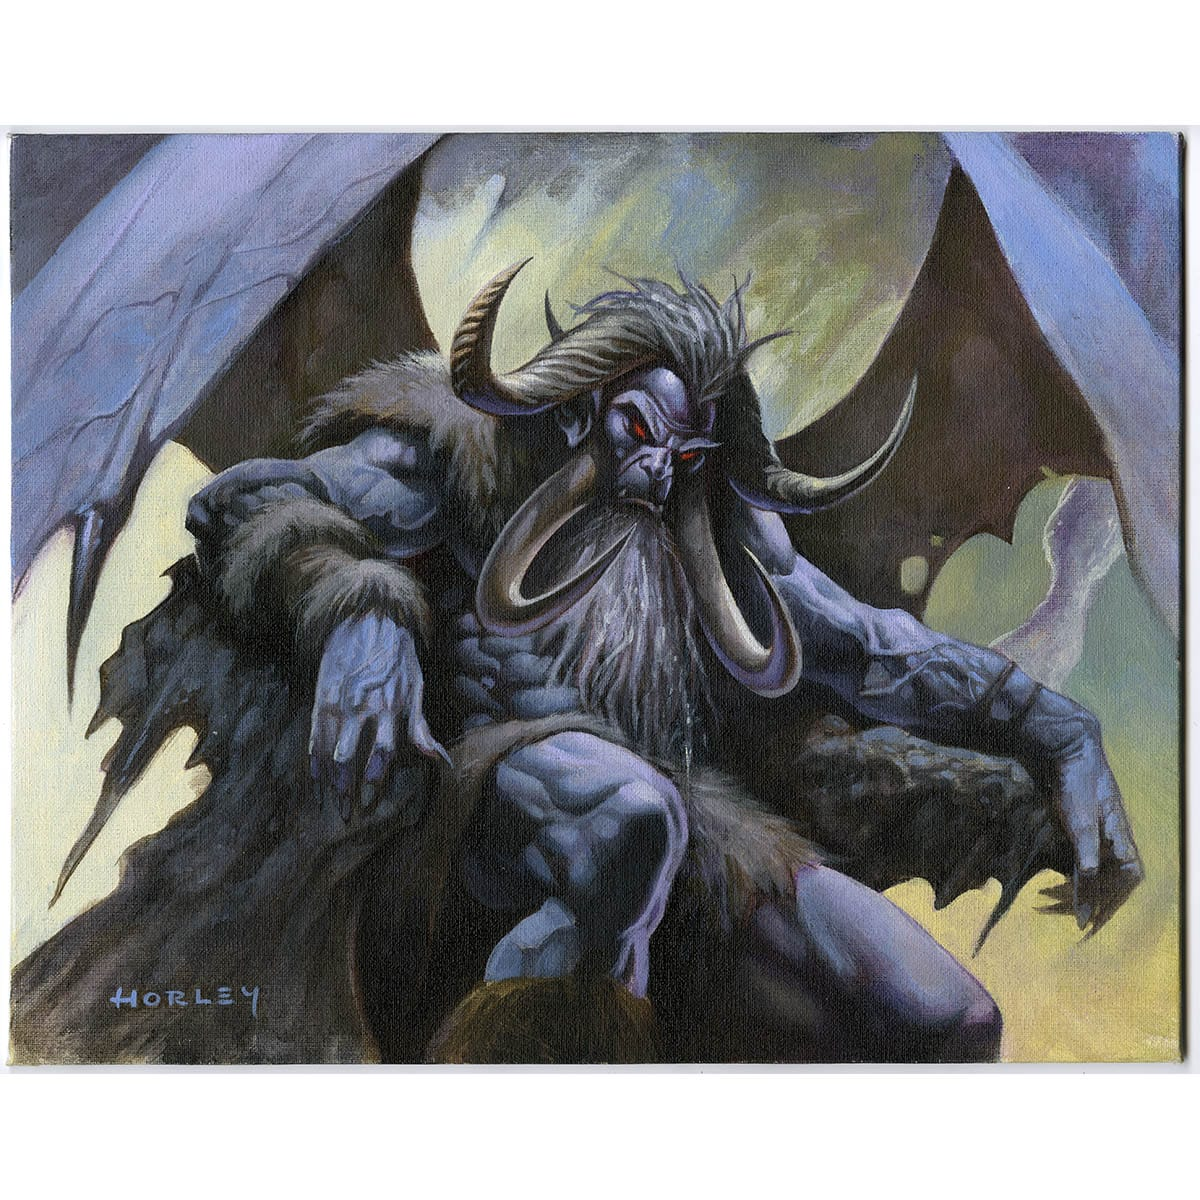 Herald of Leshrac Print - Print - Original Magic Art - Accessories for Magic the Gathering and other card games